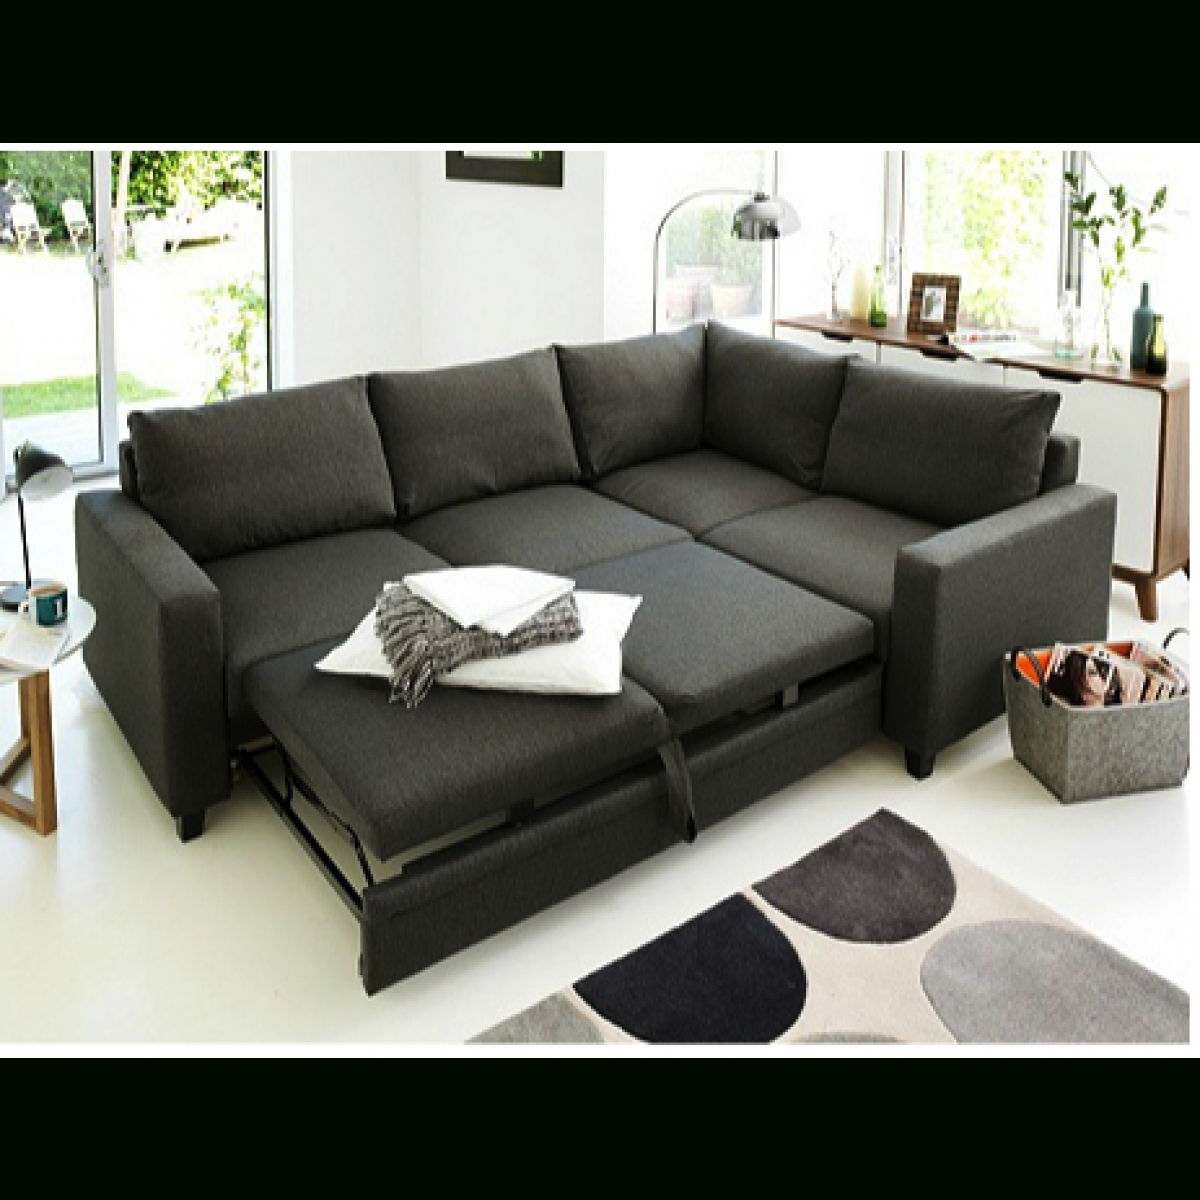 Hygena Seattle Right Hand Corner Sofa Bed – Charcoal (Image 15 of 20)